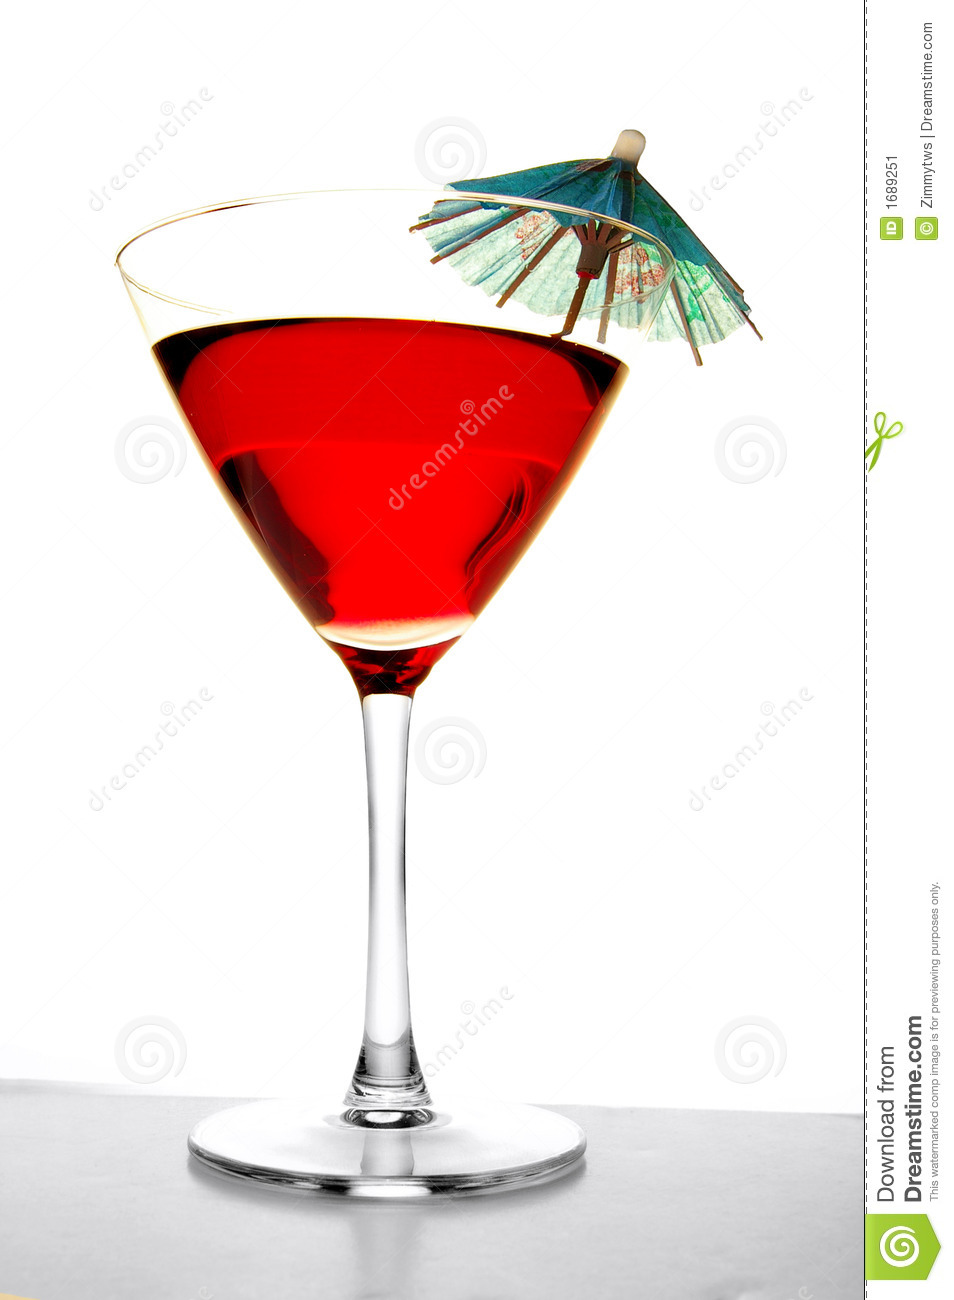 Tropical Umbrella Drink Stock Image Image Of Booze